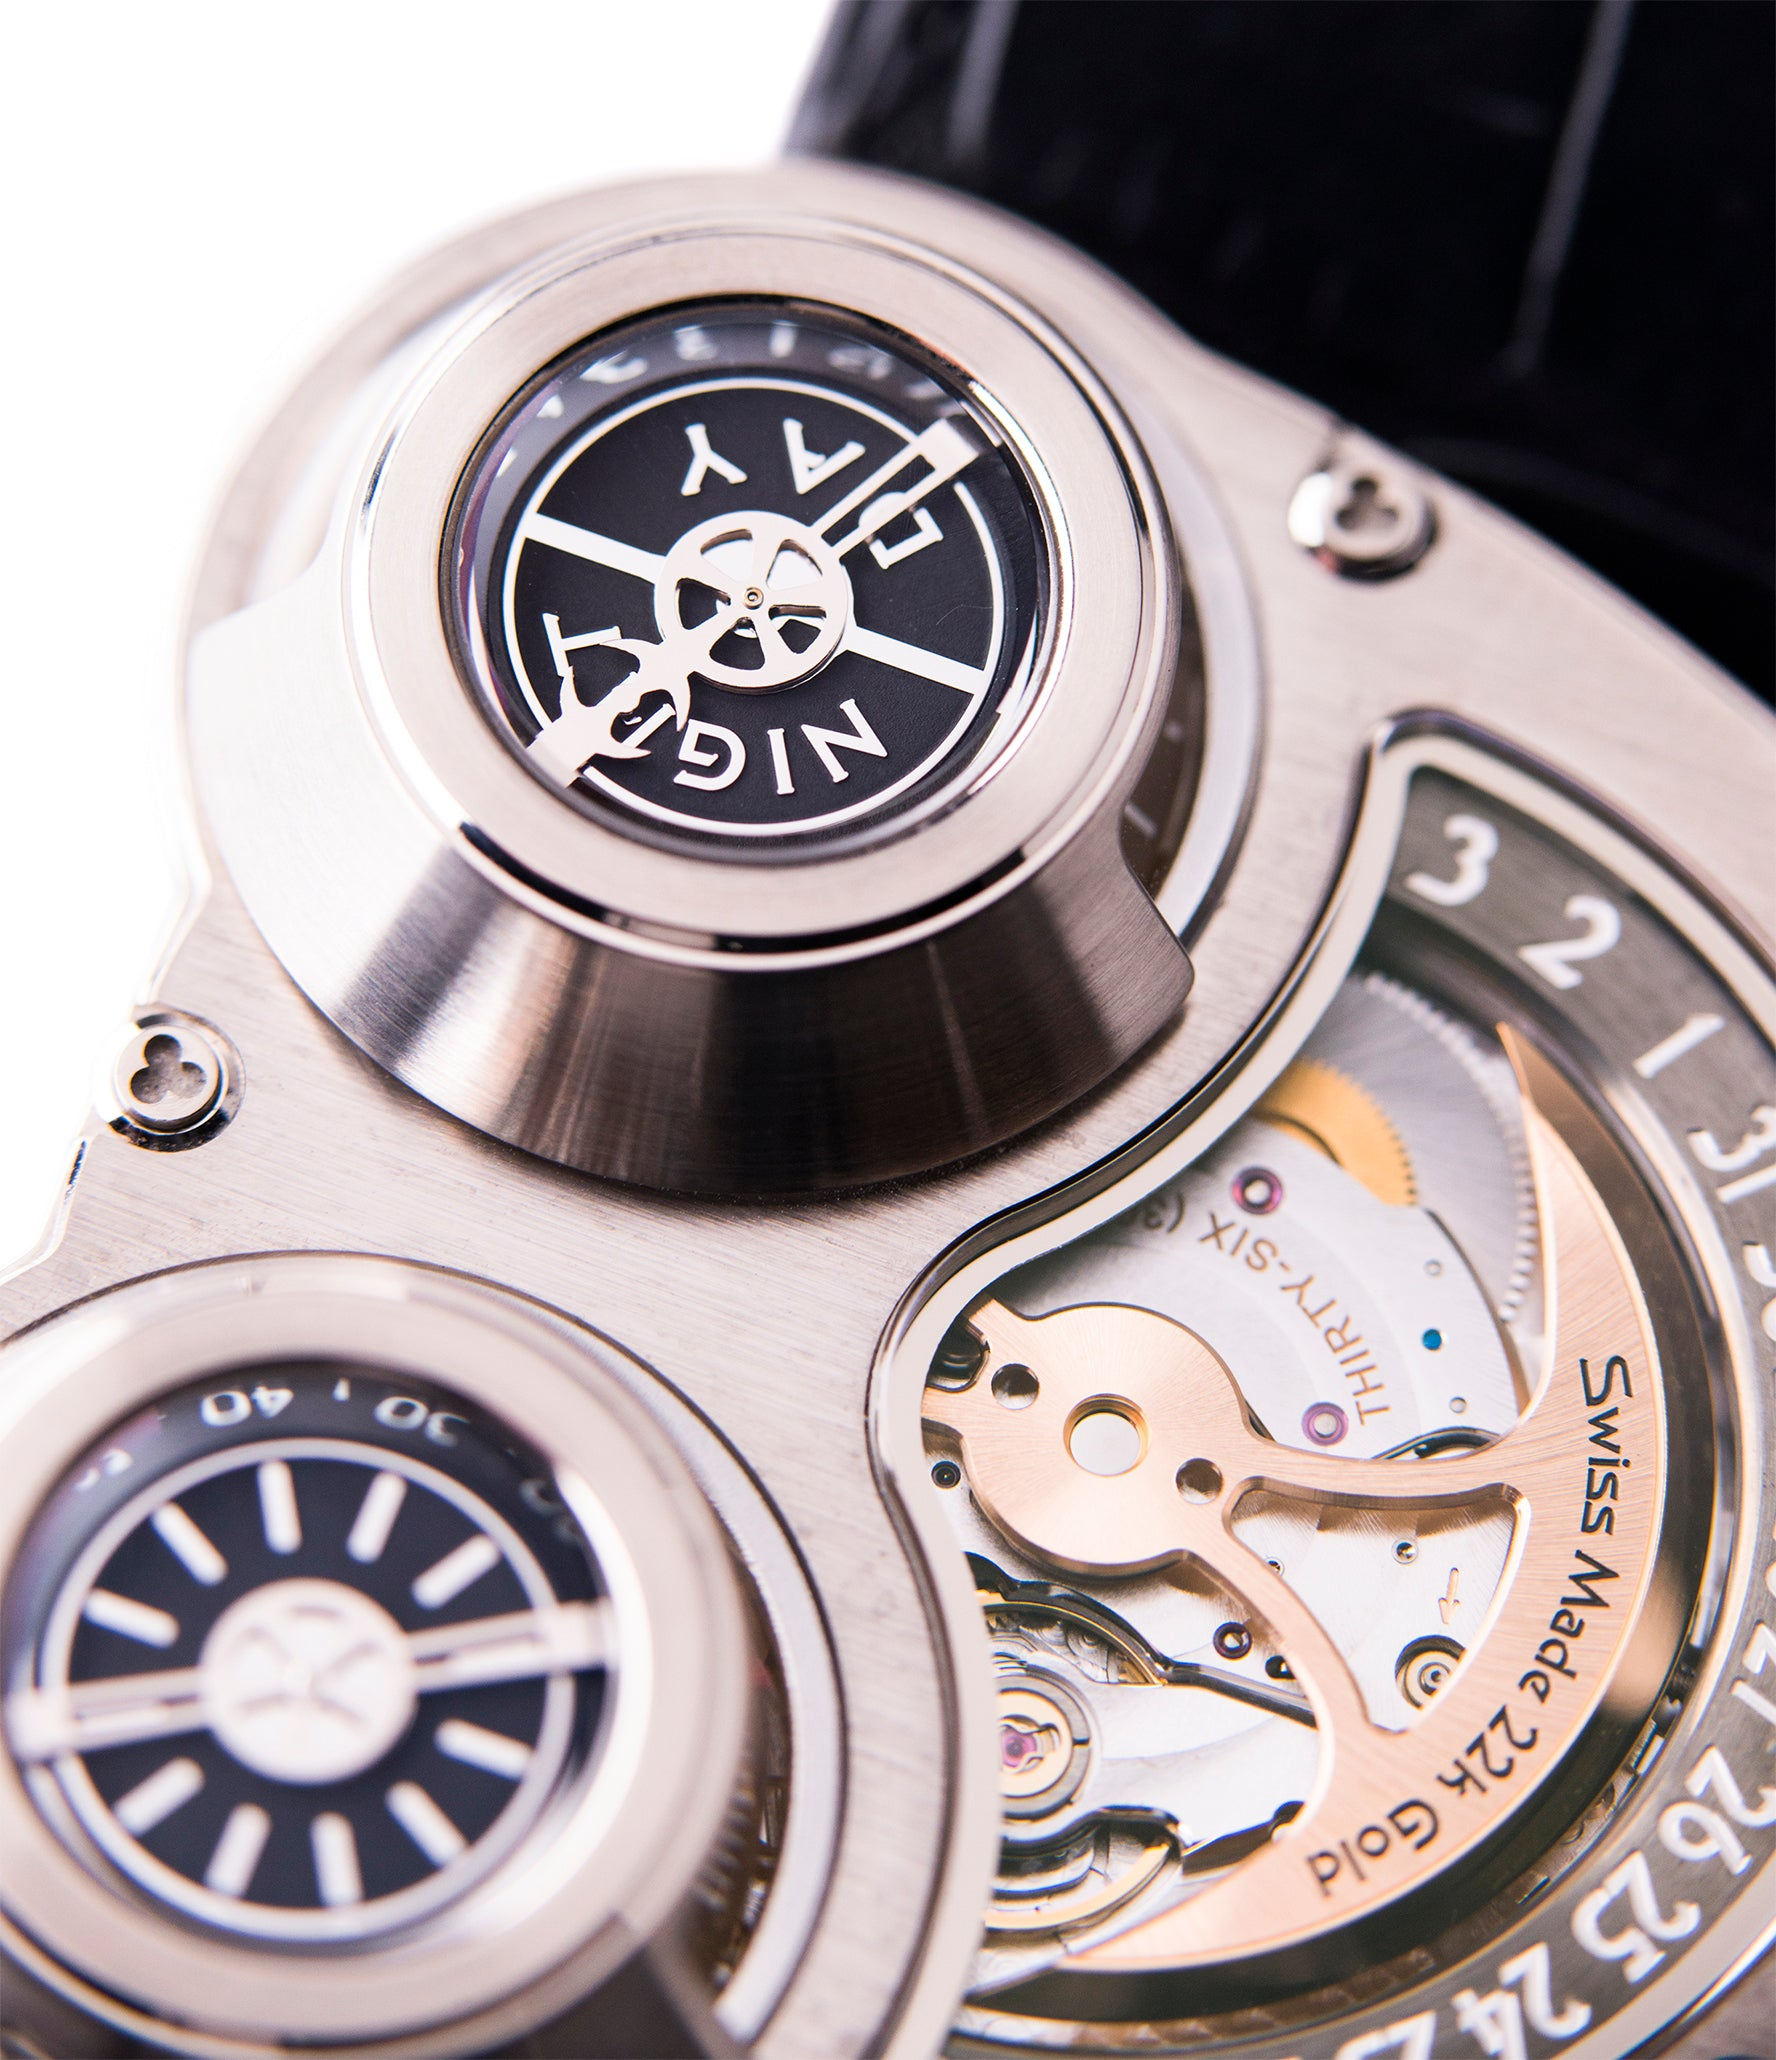 MB&F HM3 Horological Machine 3 Sidewinder Max Busser Wiederrecht white gold watch by independent watchmaker for sale online at A Collected Man London UK specialist of rare watches